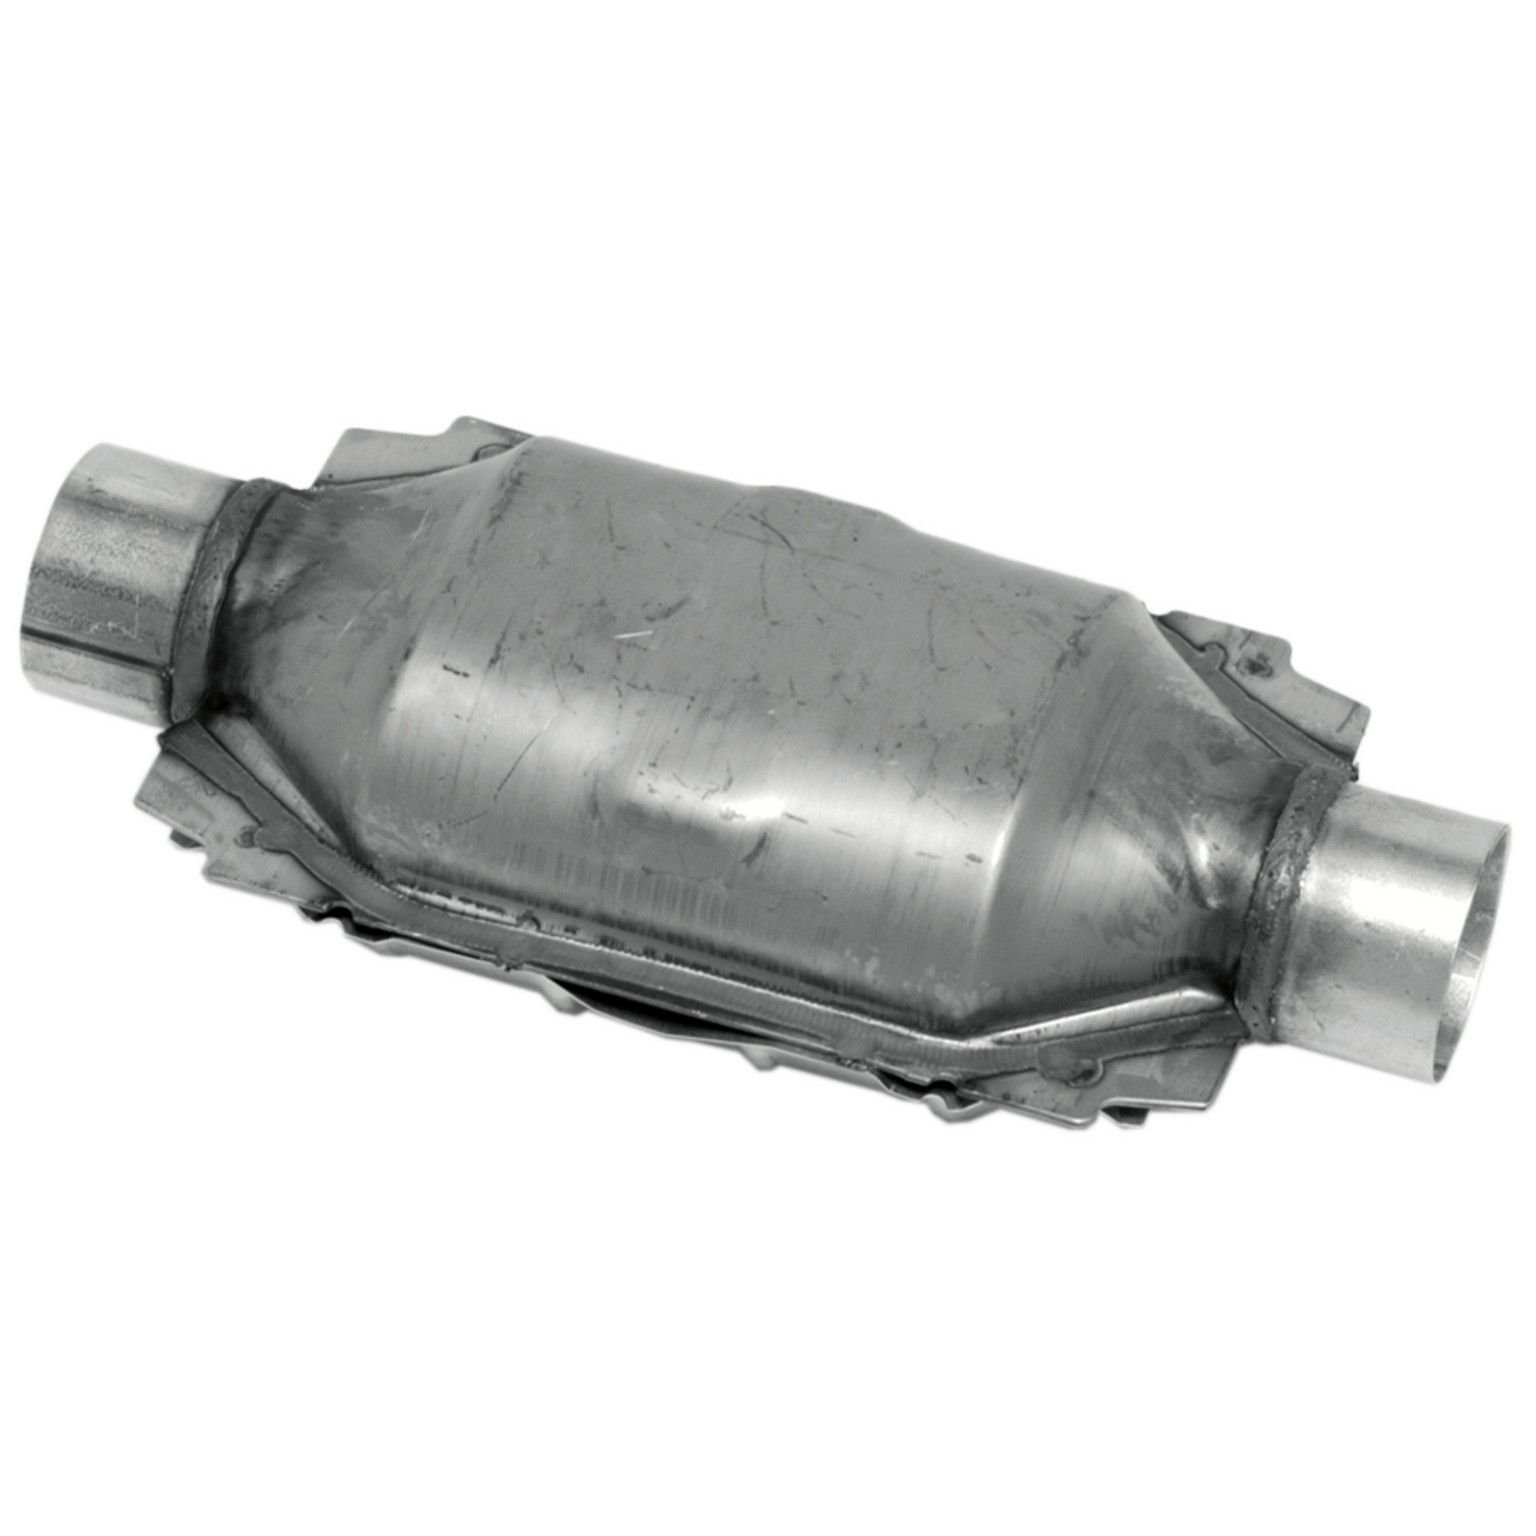 2003 Lincoln Town Car Catalytic Converter Rear Left 8 Cyl 46l Walker 93237 Fits Fed Calif Emiss Models Not Legal For Sale In The State Of California: 2005 Lincoln Town Car Catalytic Converter At Woreks.co